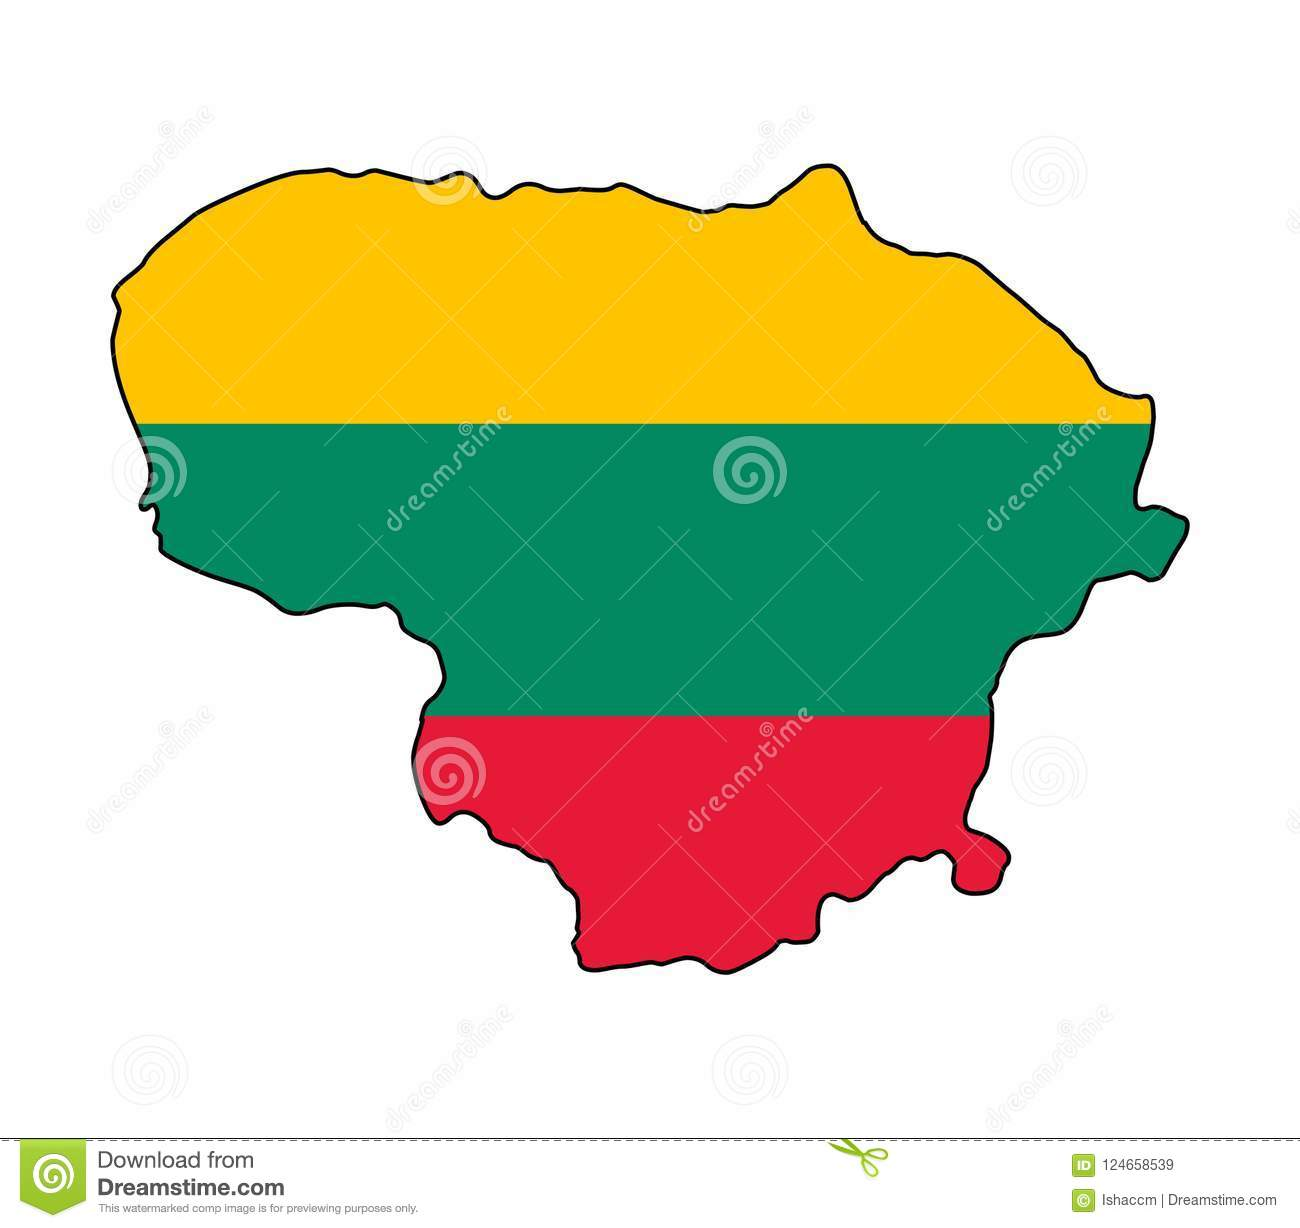 Lithuania Carte d illustration de vecteur de la Lithuanie